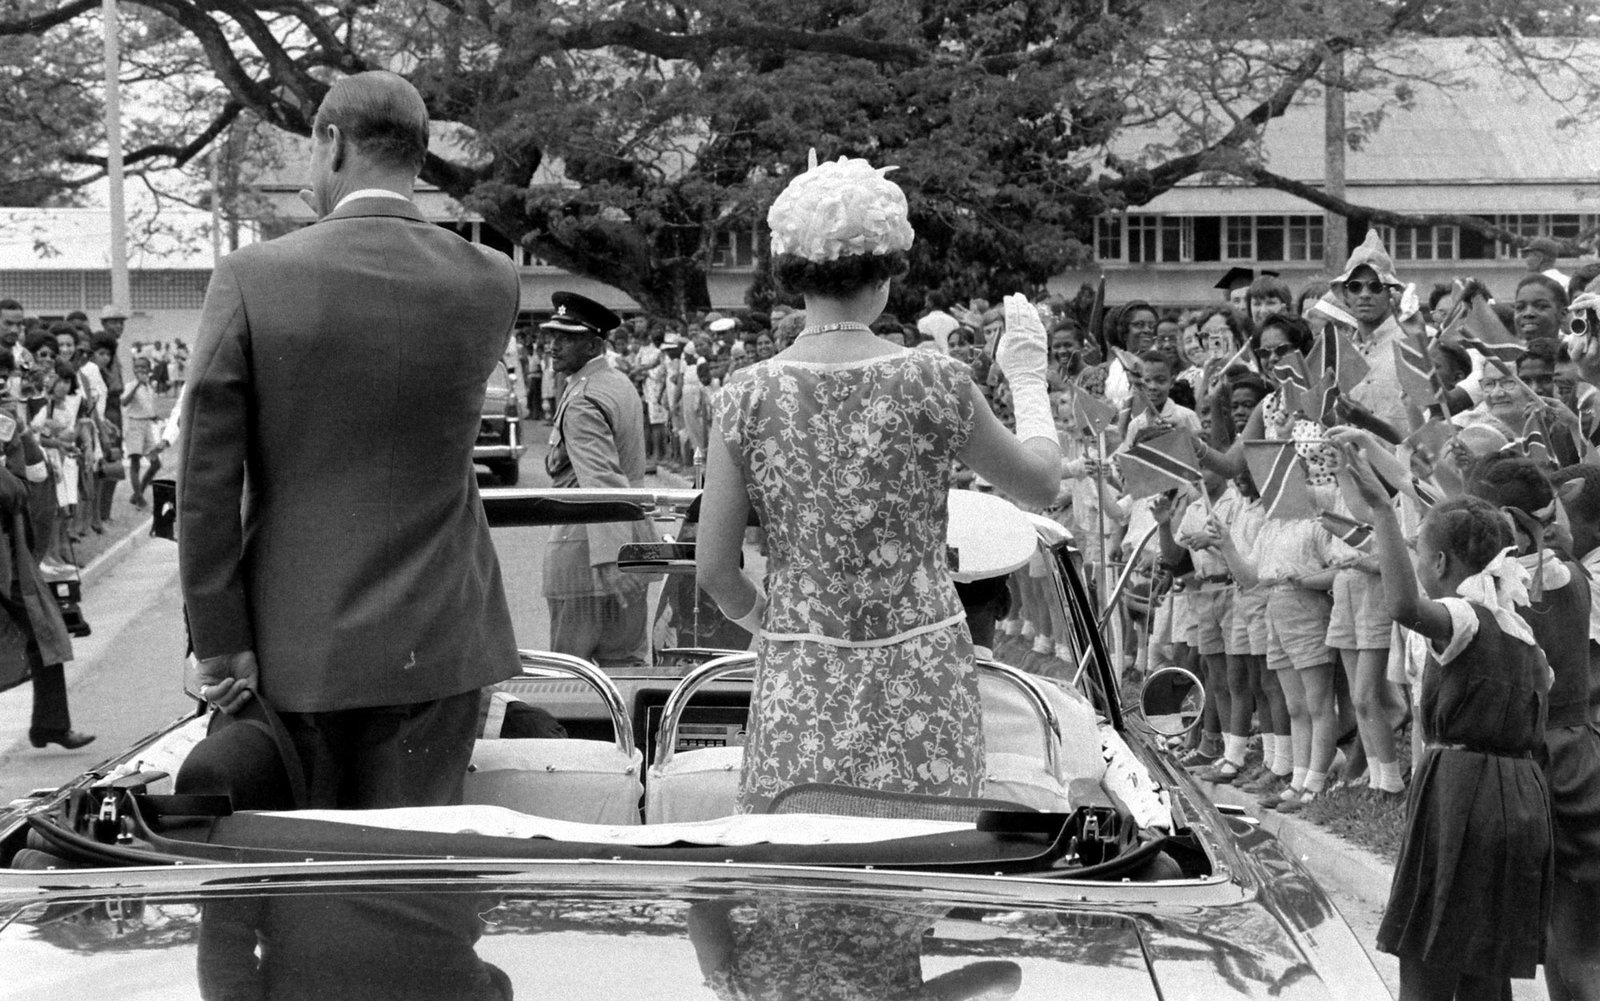 Queen Elizabeth II Trinidad and Tobago 1966